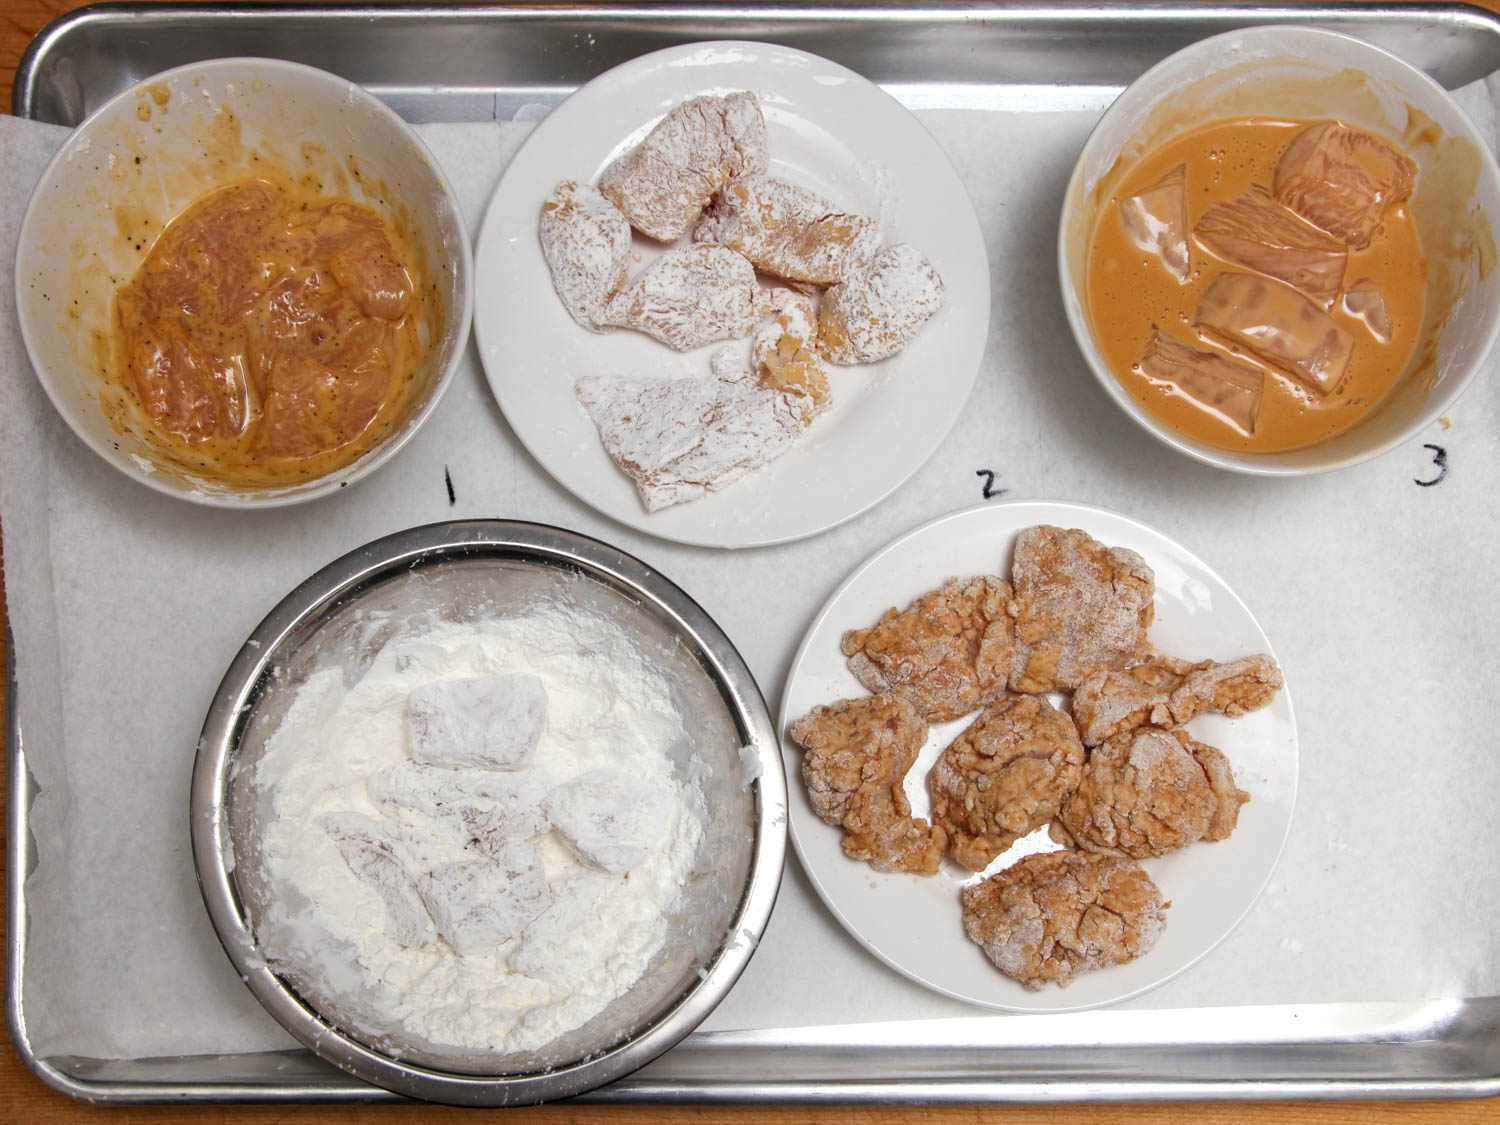 Boneless chicken thighs cut into pieces and in five different bowls with five different breadings or batters.